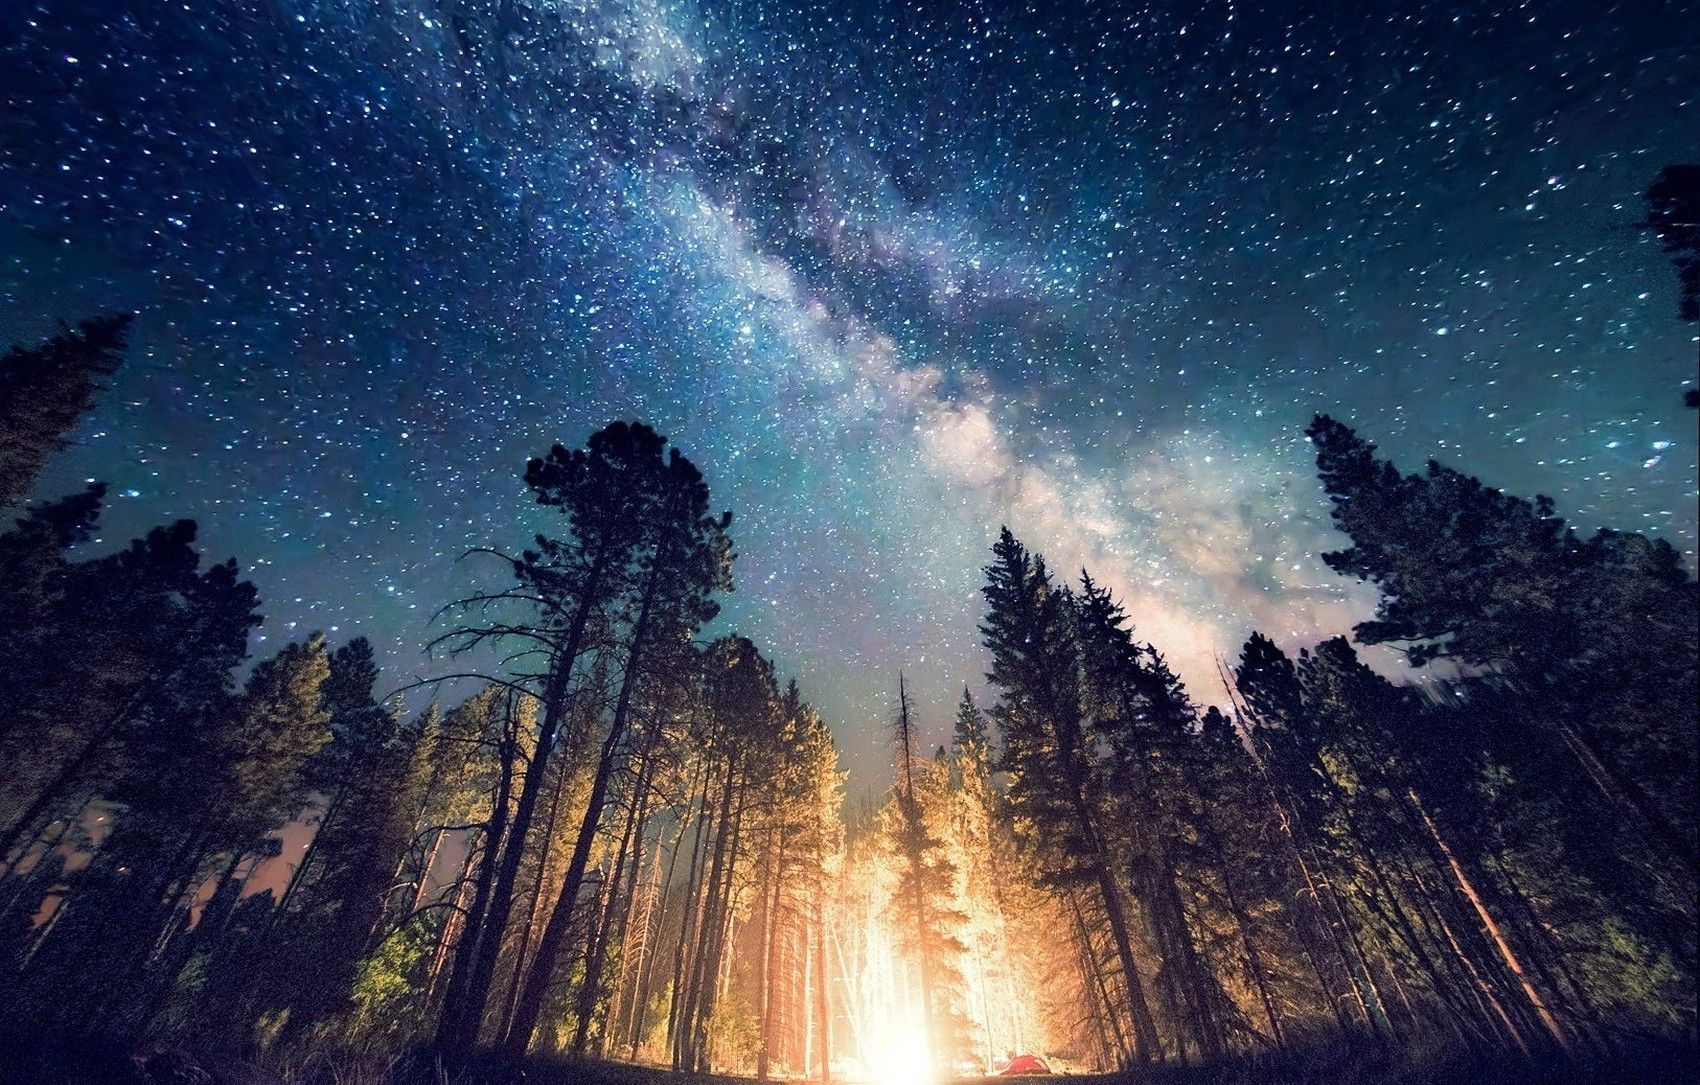 Forest Galaxy Wallpapers Top Free Forest Galaxy Backgrounds Wallpaperaccess